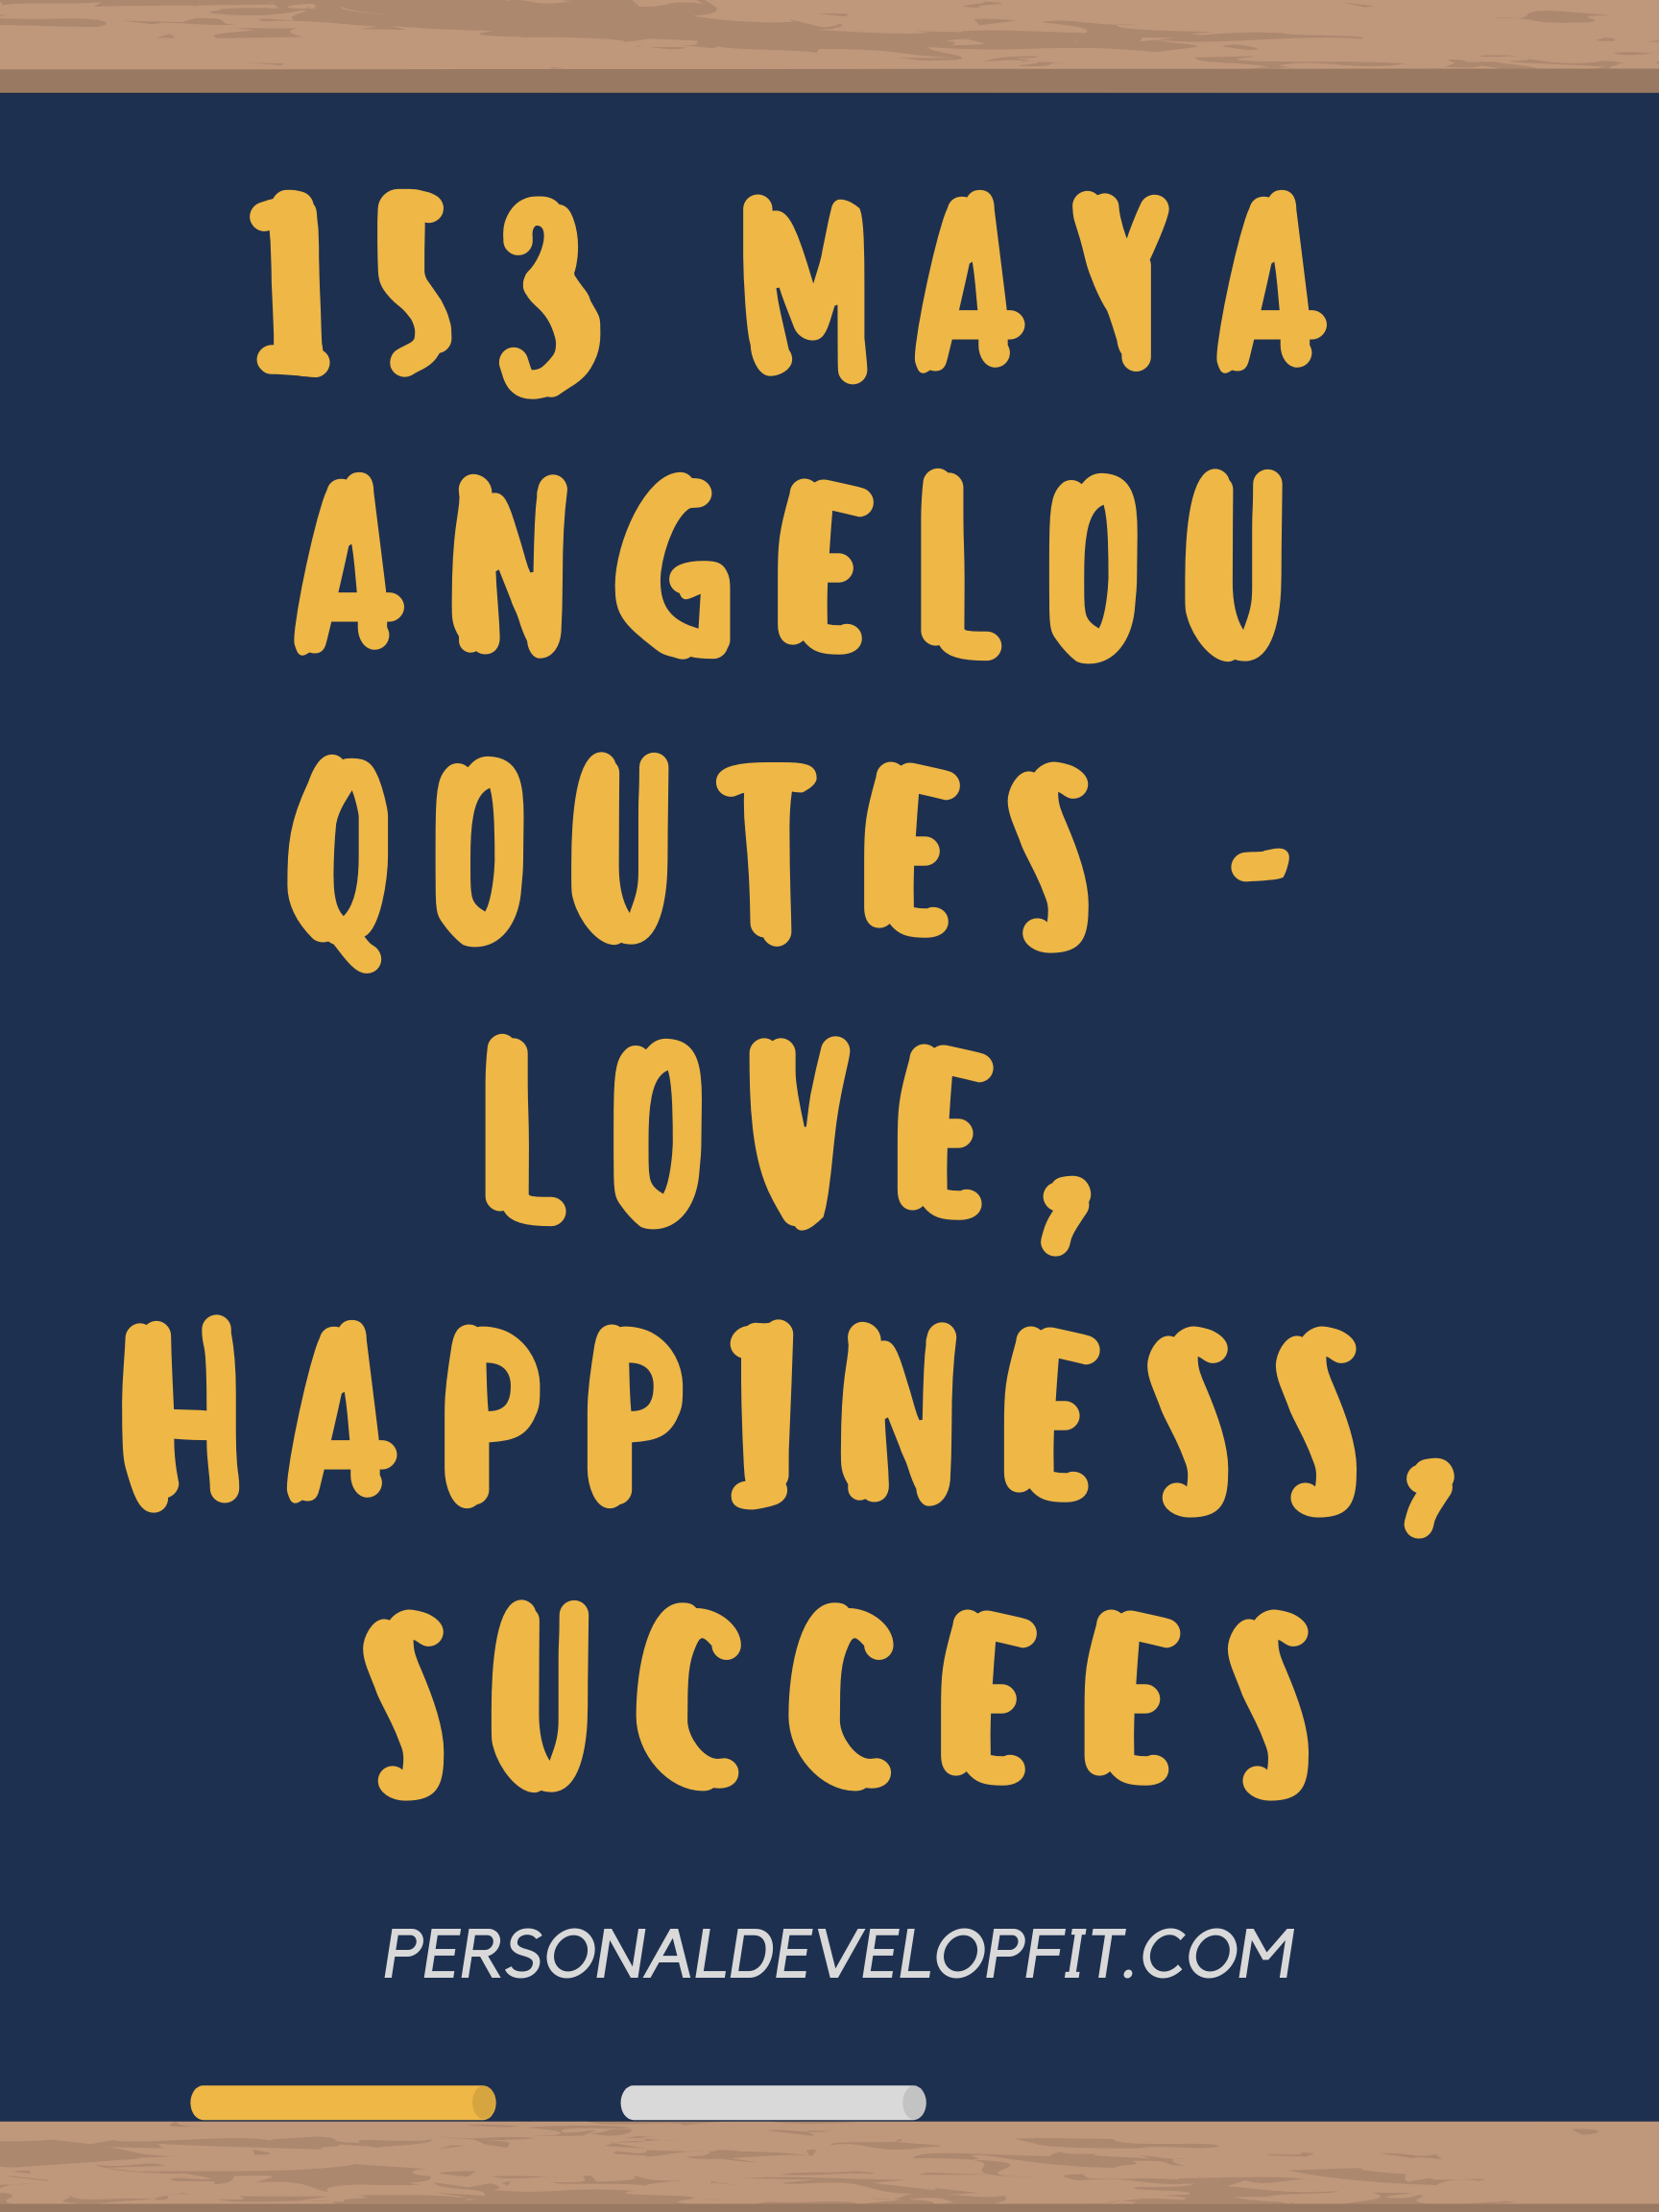 Maya Angelou Quotes | 153 Maya Angelou Quotes On Love Happiness Family Success